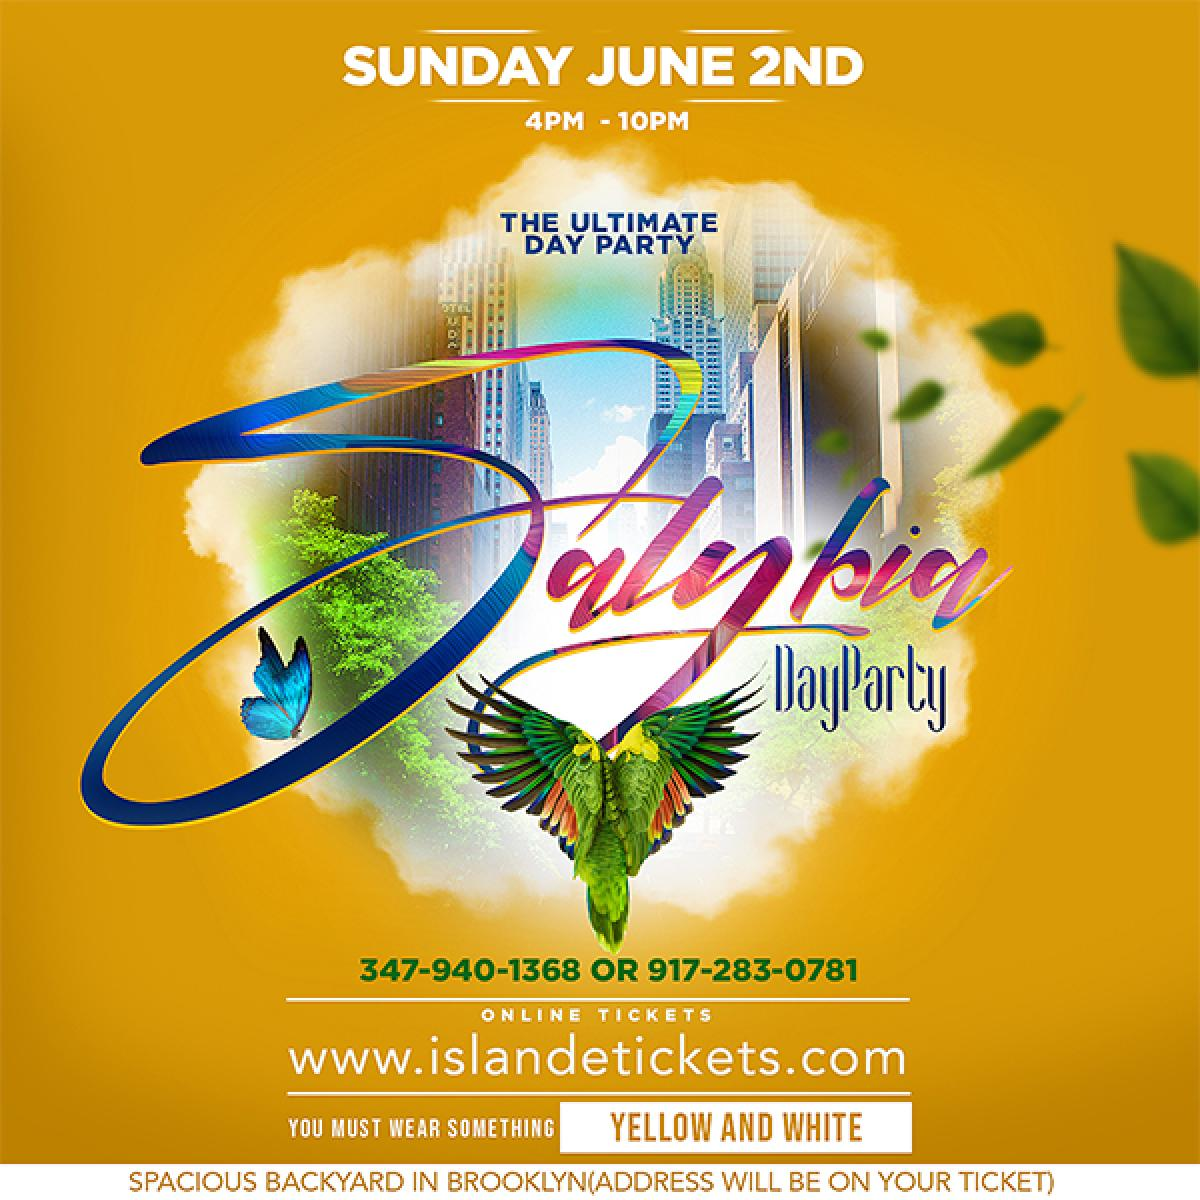 SALYBIA Day Party flyer or graphic.